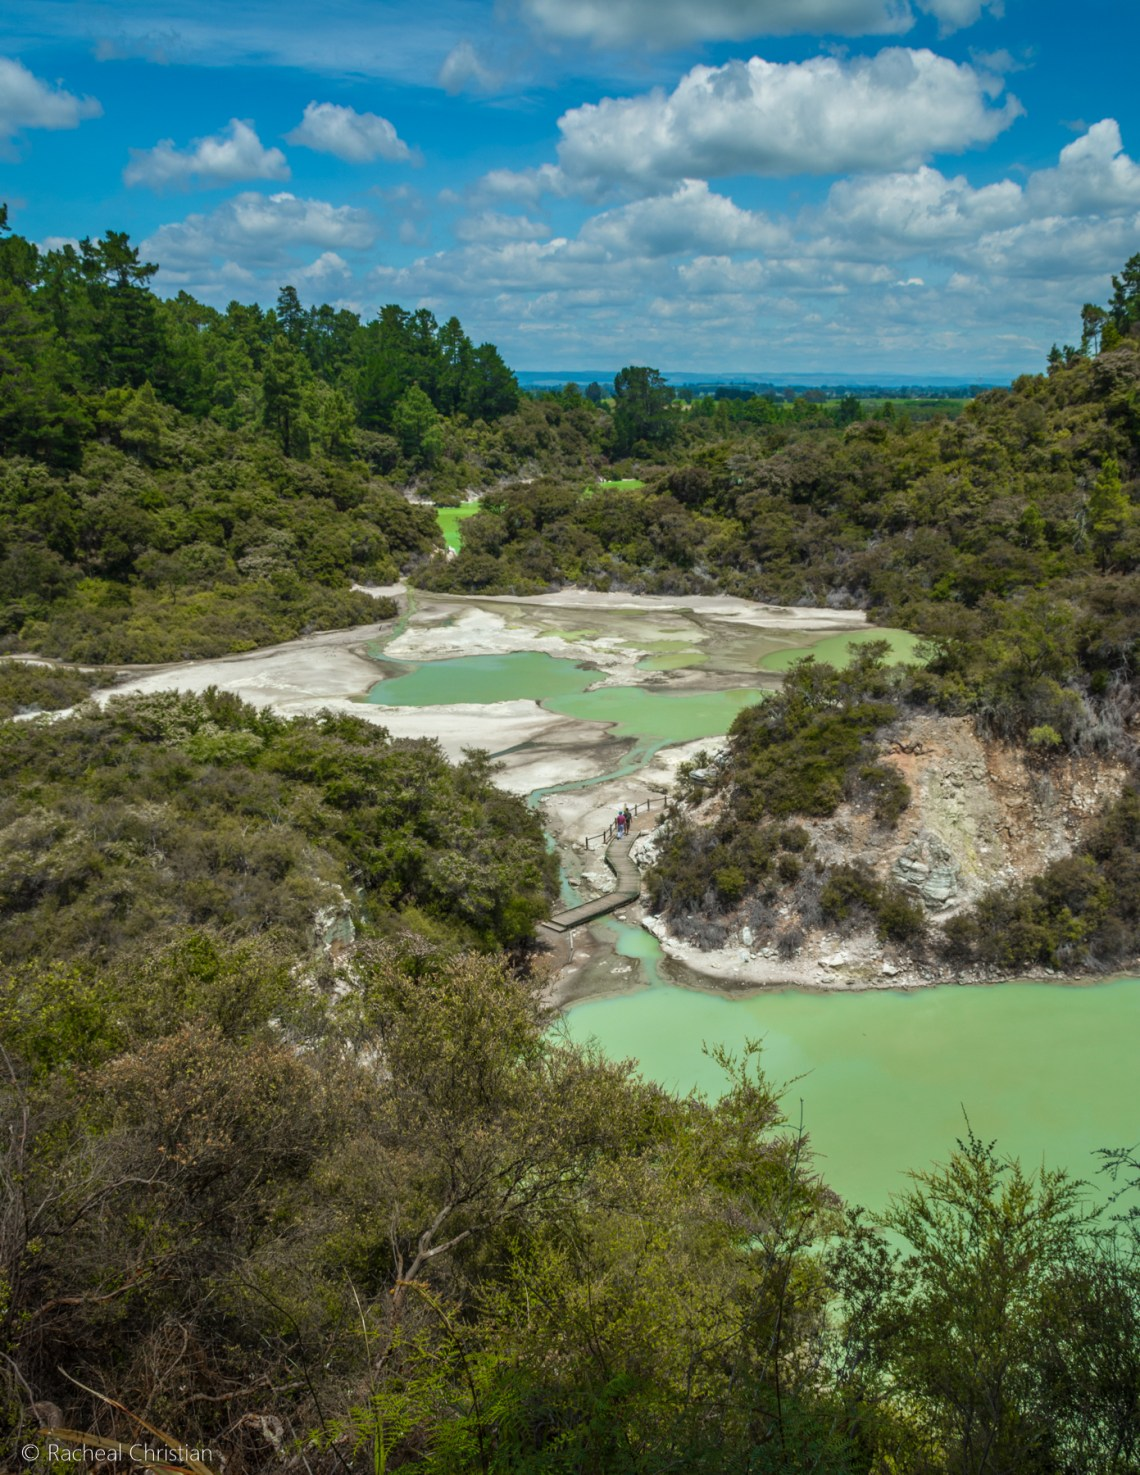 Wai-O-Tapu Thermal Wonderland |Rotorua, New Zealand by Racheal Christian